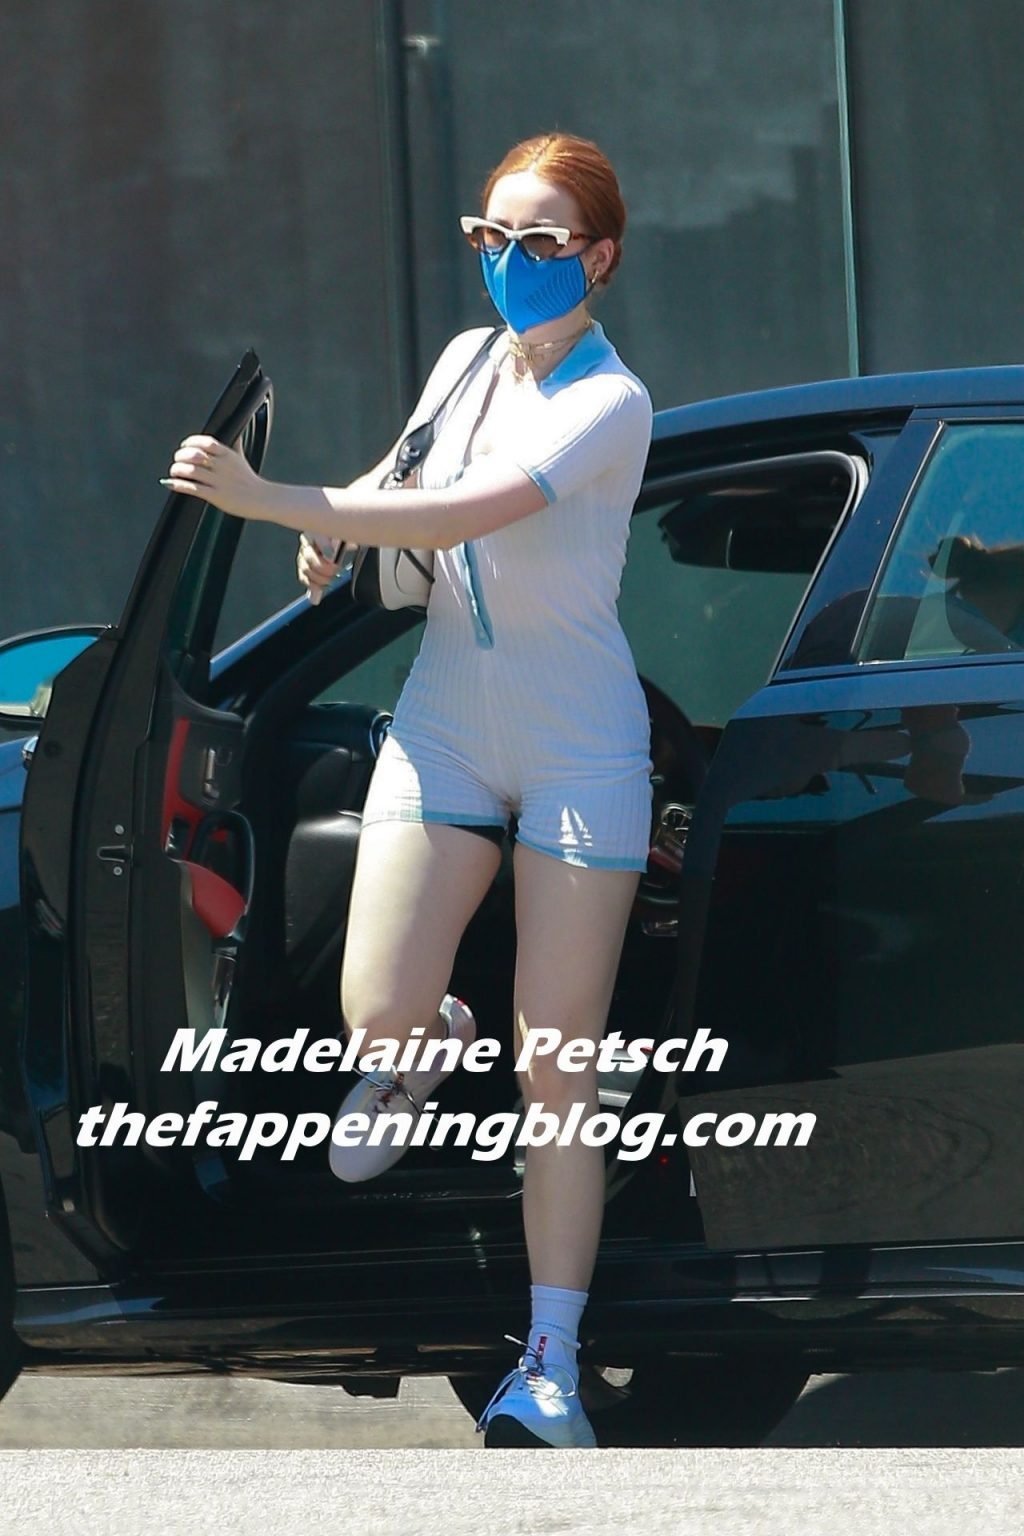 Madelaine Petsch Fappening foto 16